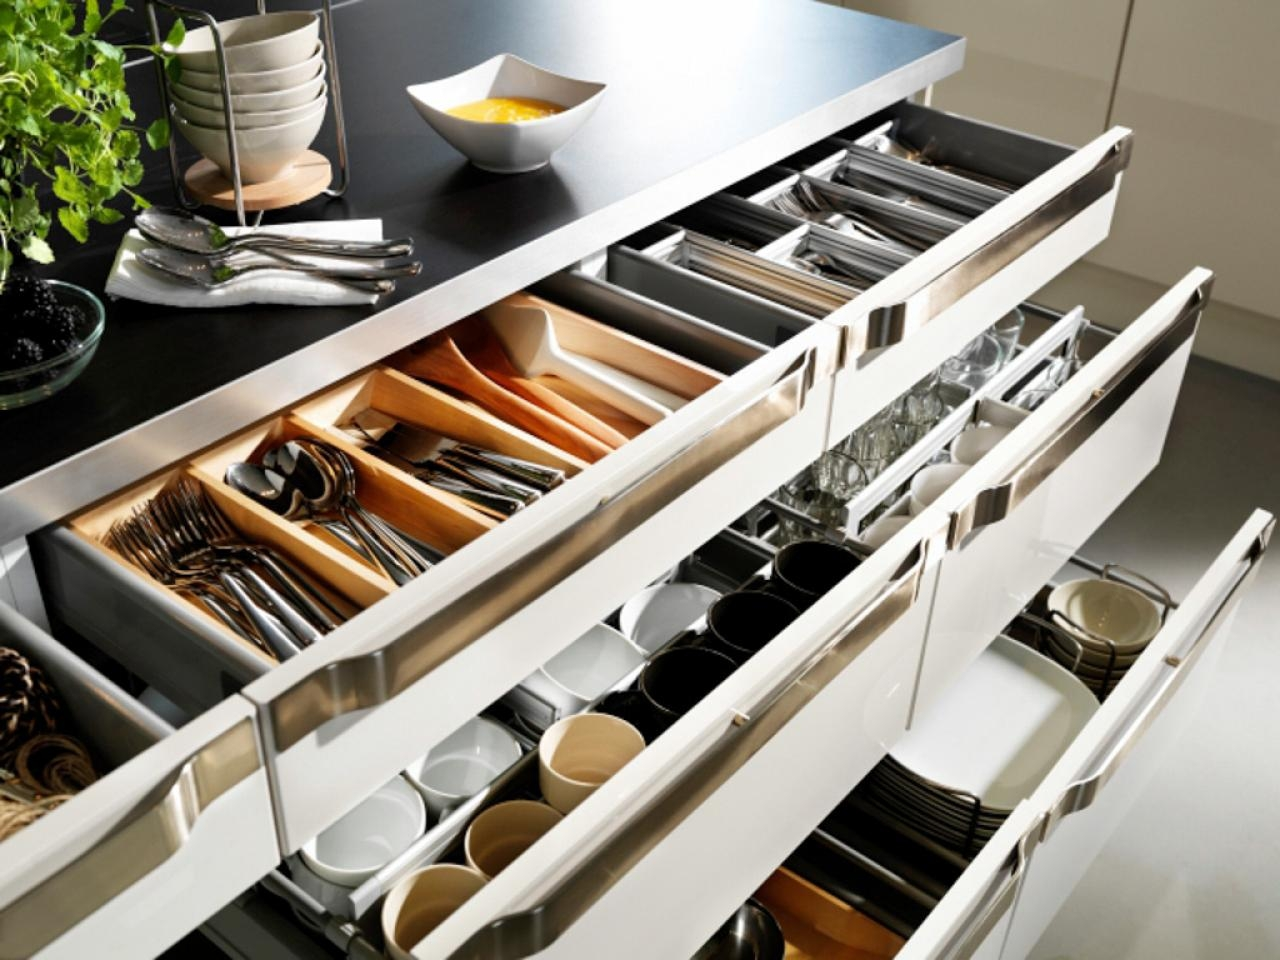 Kitchen Cabinet Organizers Cabinet Organizers Kitchen Cabinet With Regard To Cupboard Organizers (Image 11 of 25)